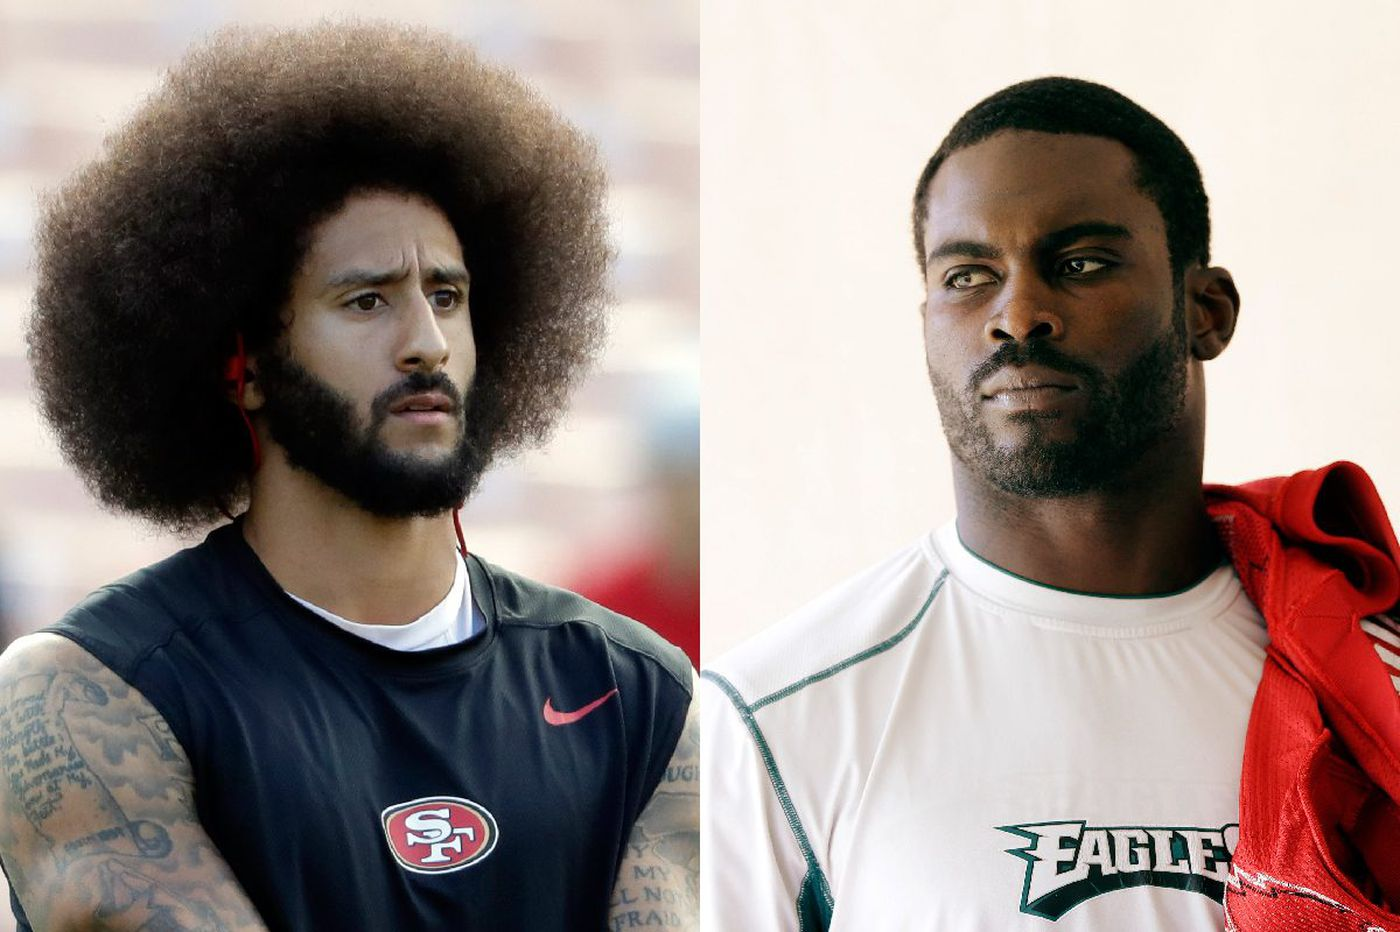 Michael Vick to Colin Kaepernick: Cut your afro